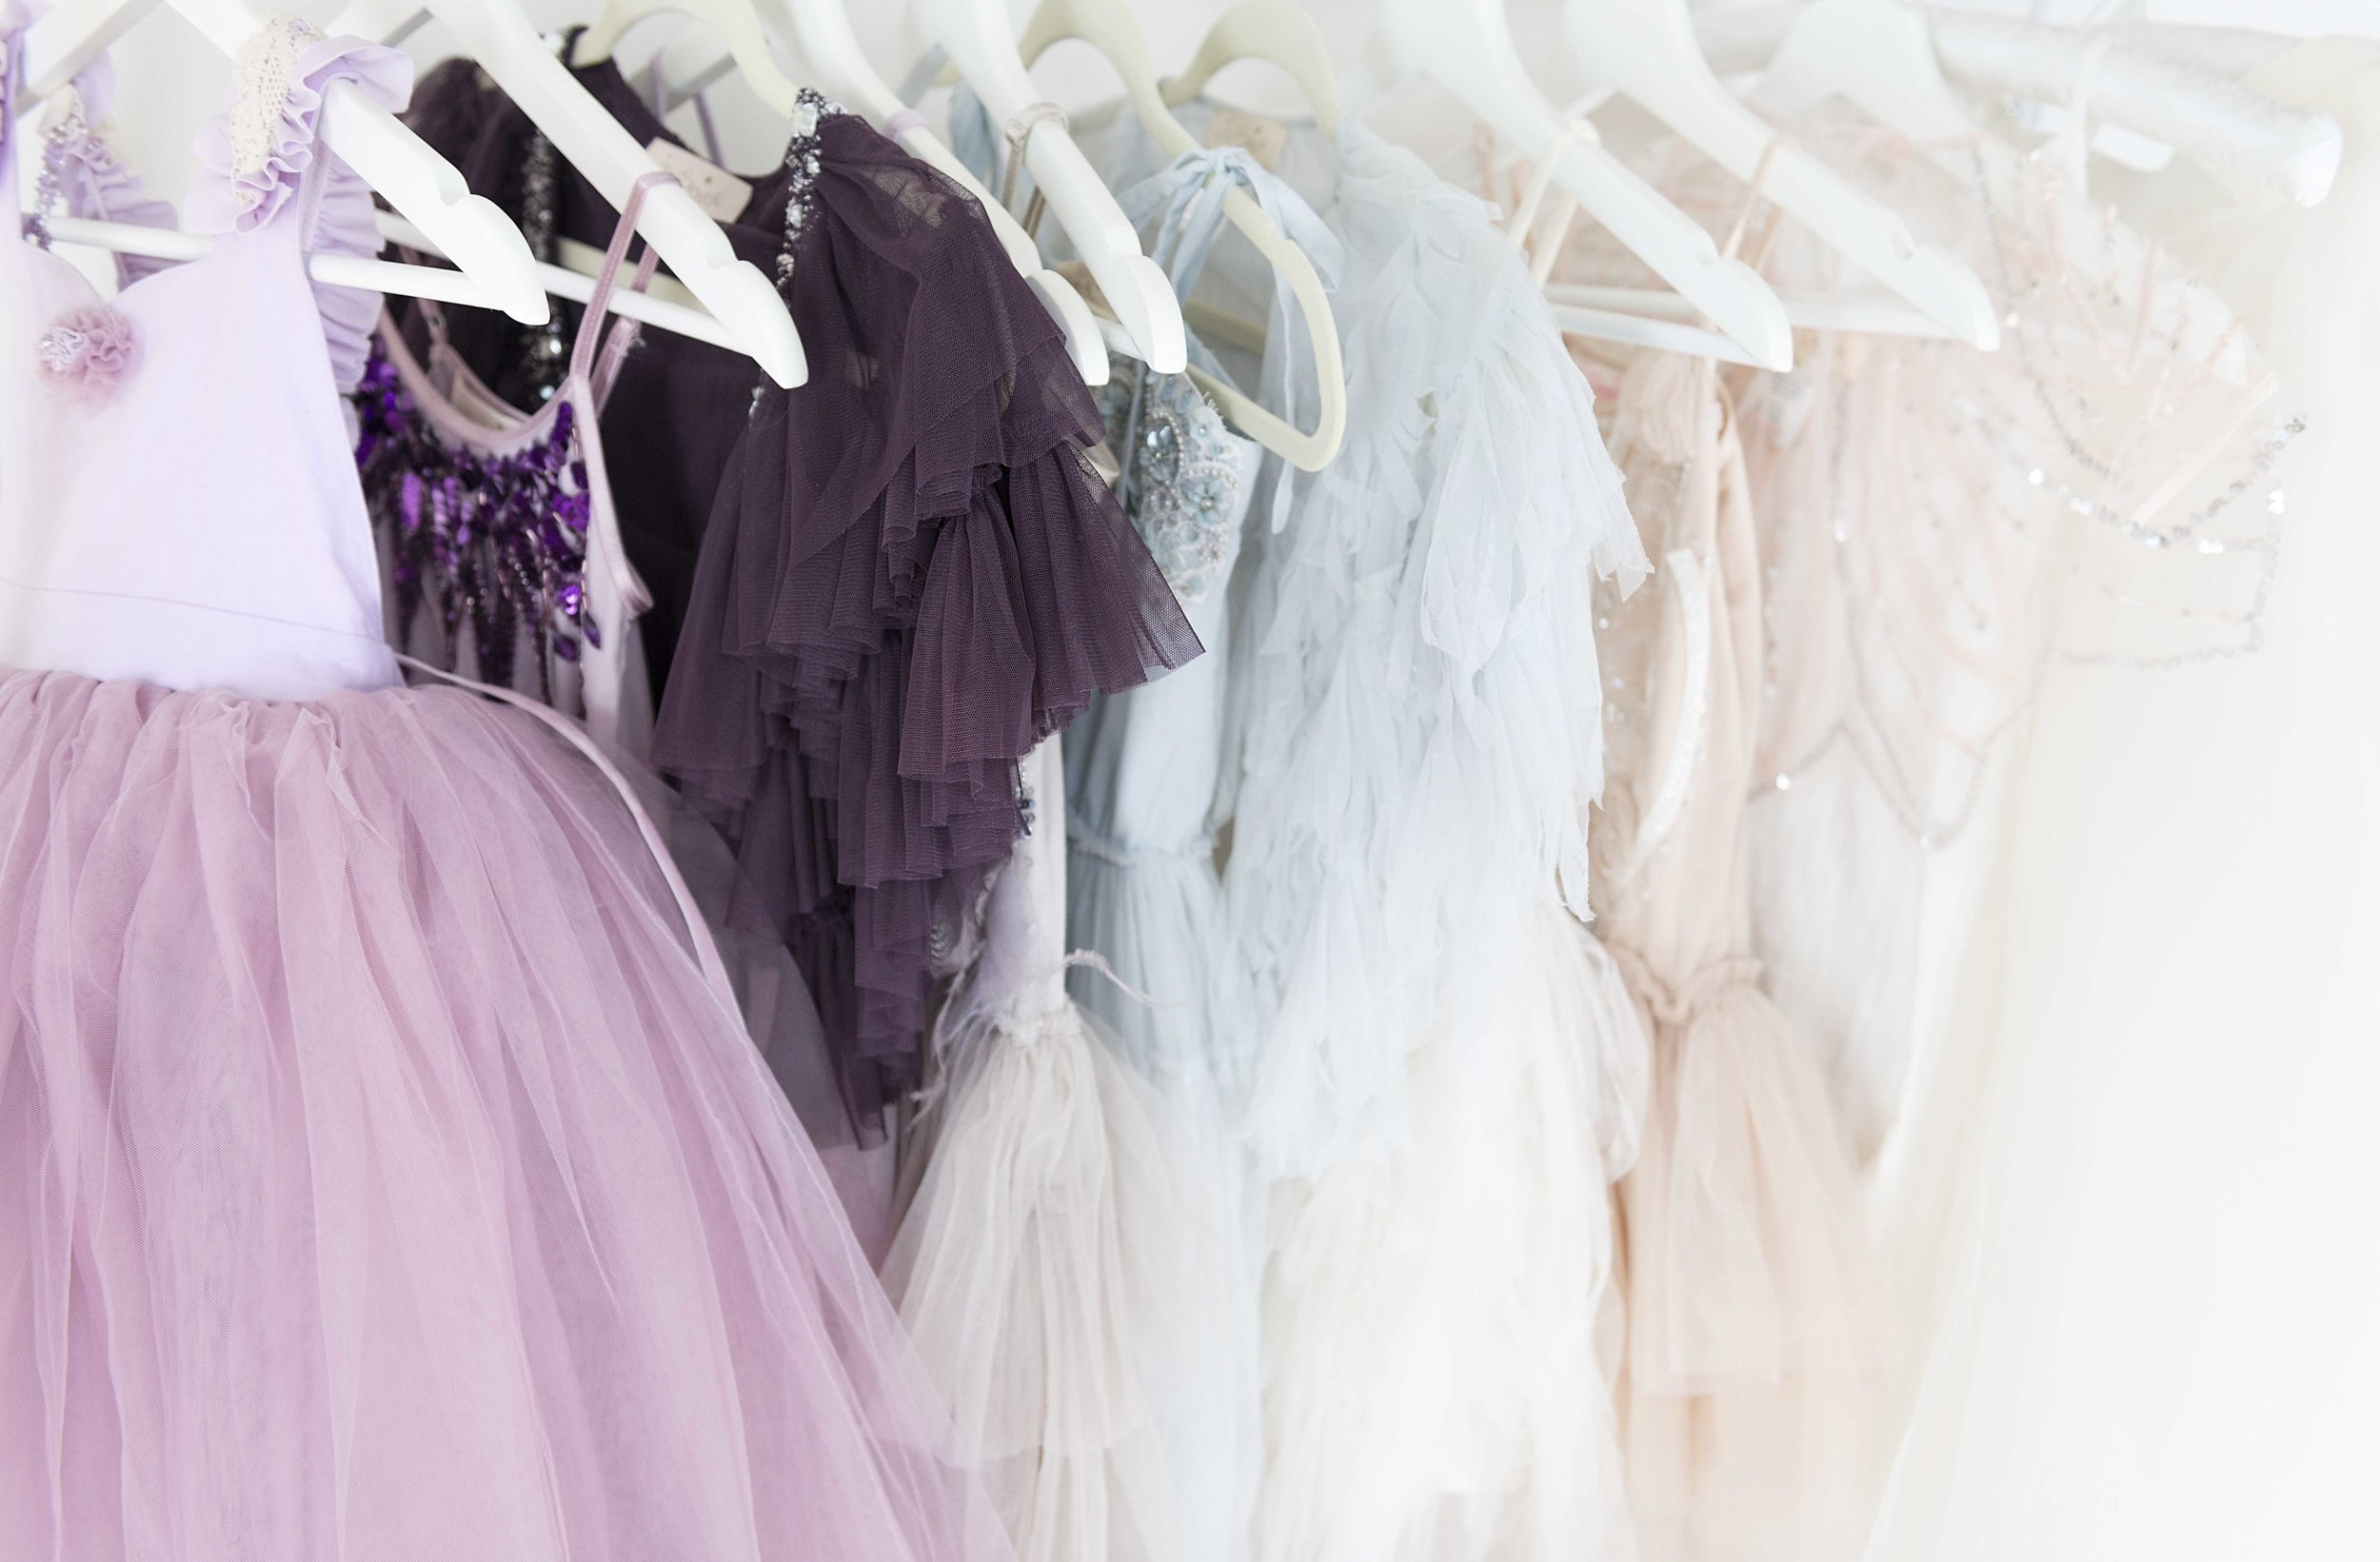 "Our ""Rainey's Closet"" rental dresses for several special Mother Daughter shoots. Treat your daughter to tulle. Rainy's Closet has stylish affordable fashion rental dresses for your daughters photoshoot. Dresses are as little as $30 for 4 days."